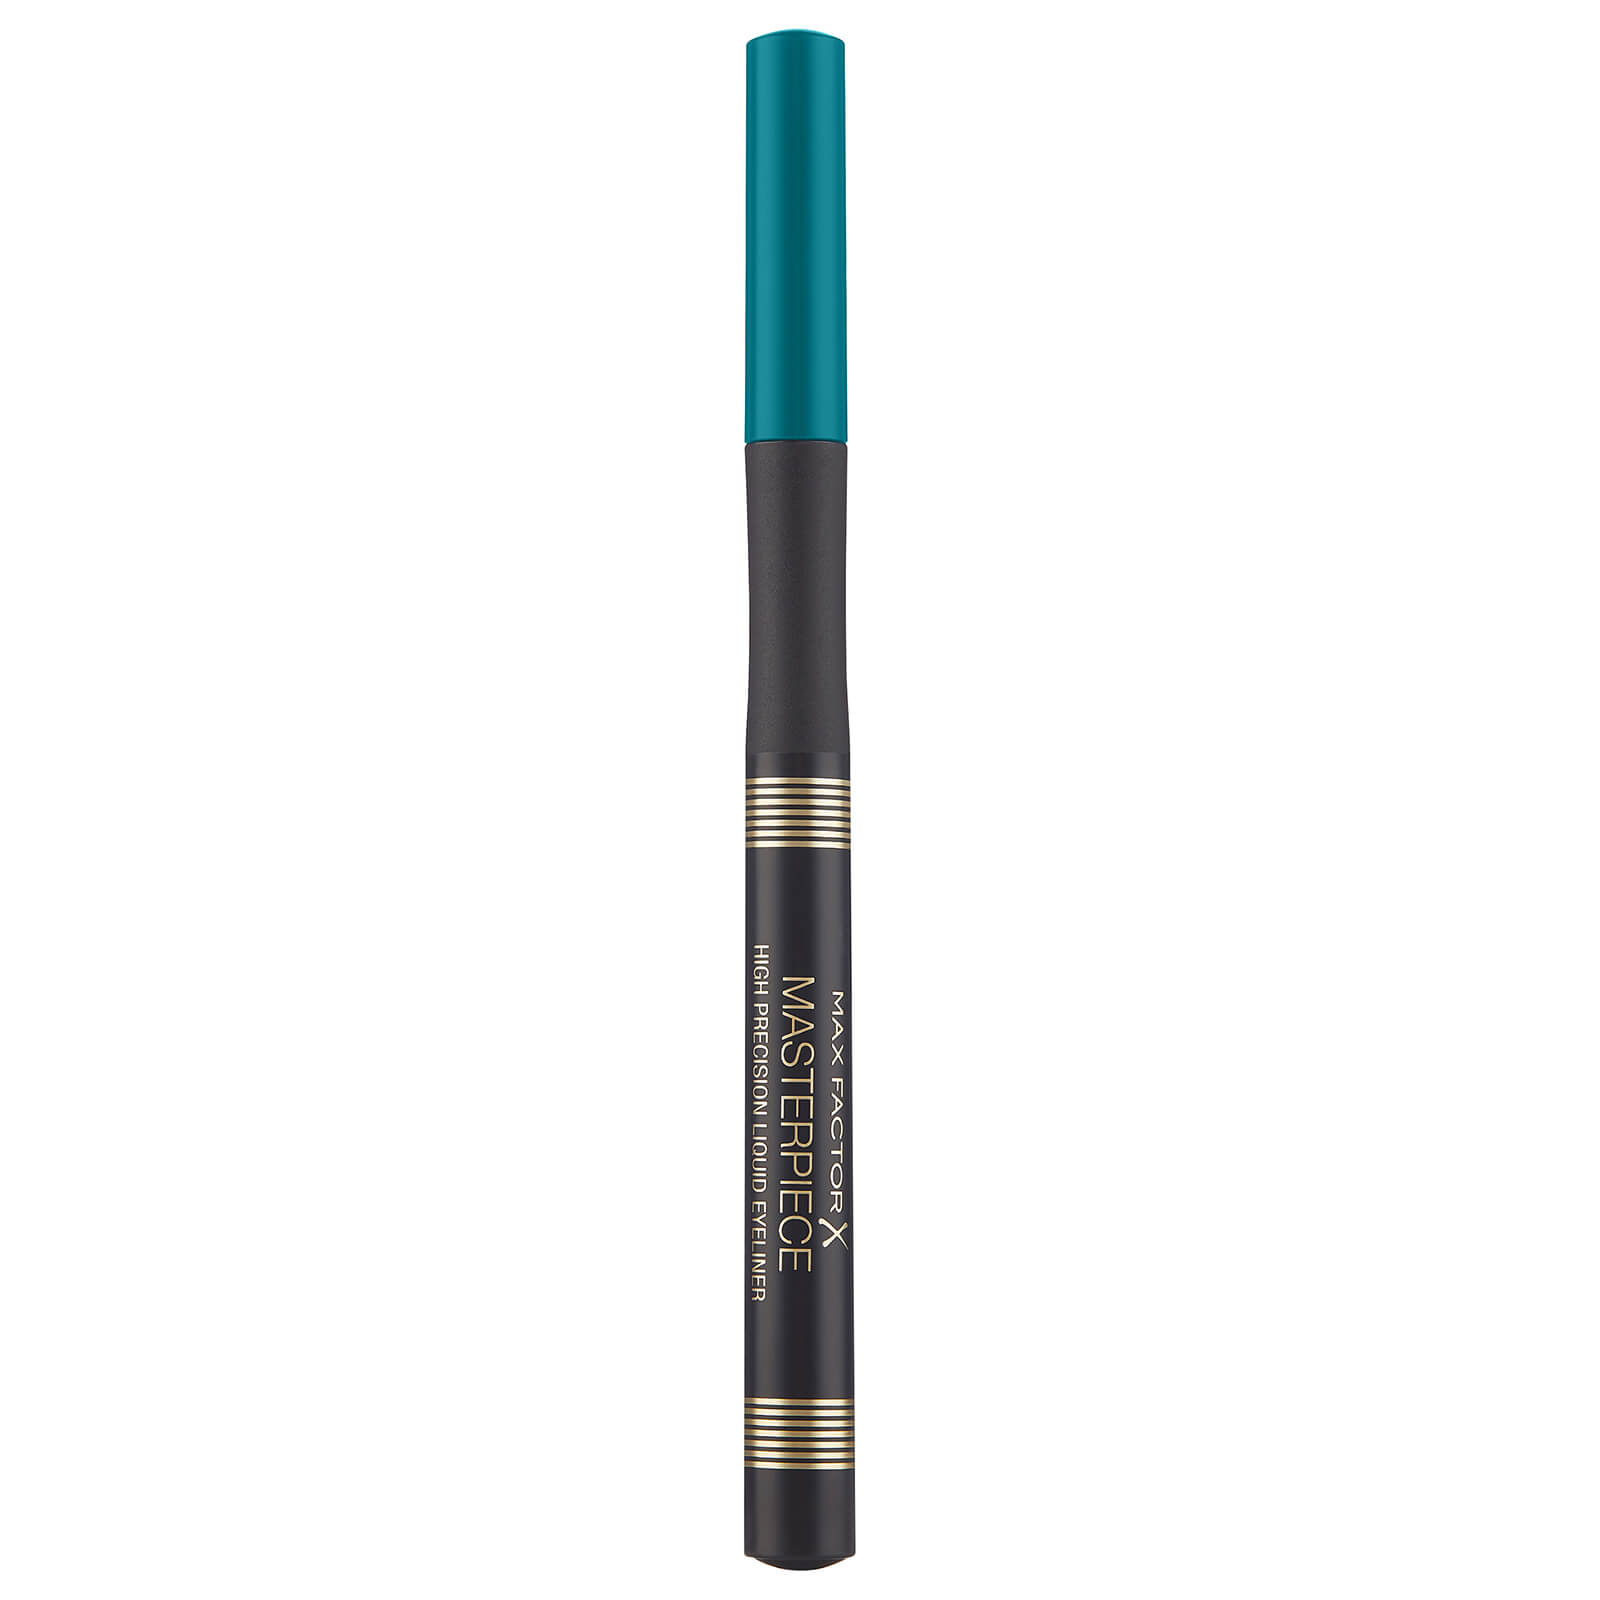 Max Factor Masterpiece High Definition Liquid Eye Liner 13.3ml (Various Shades) - 040 Turquoise